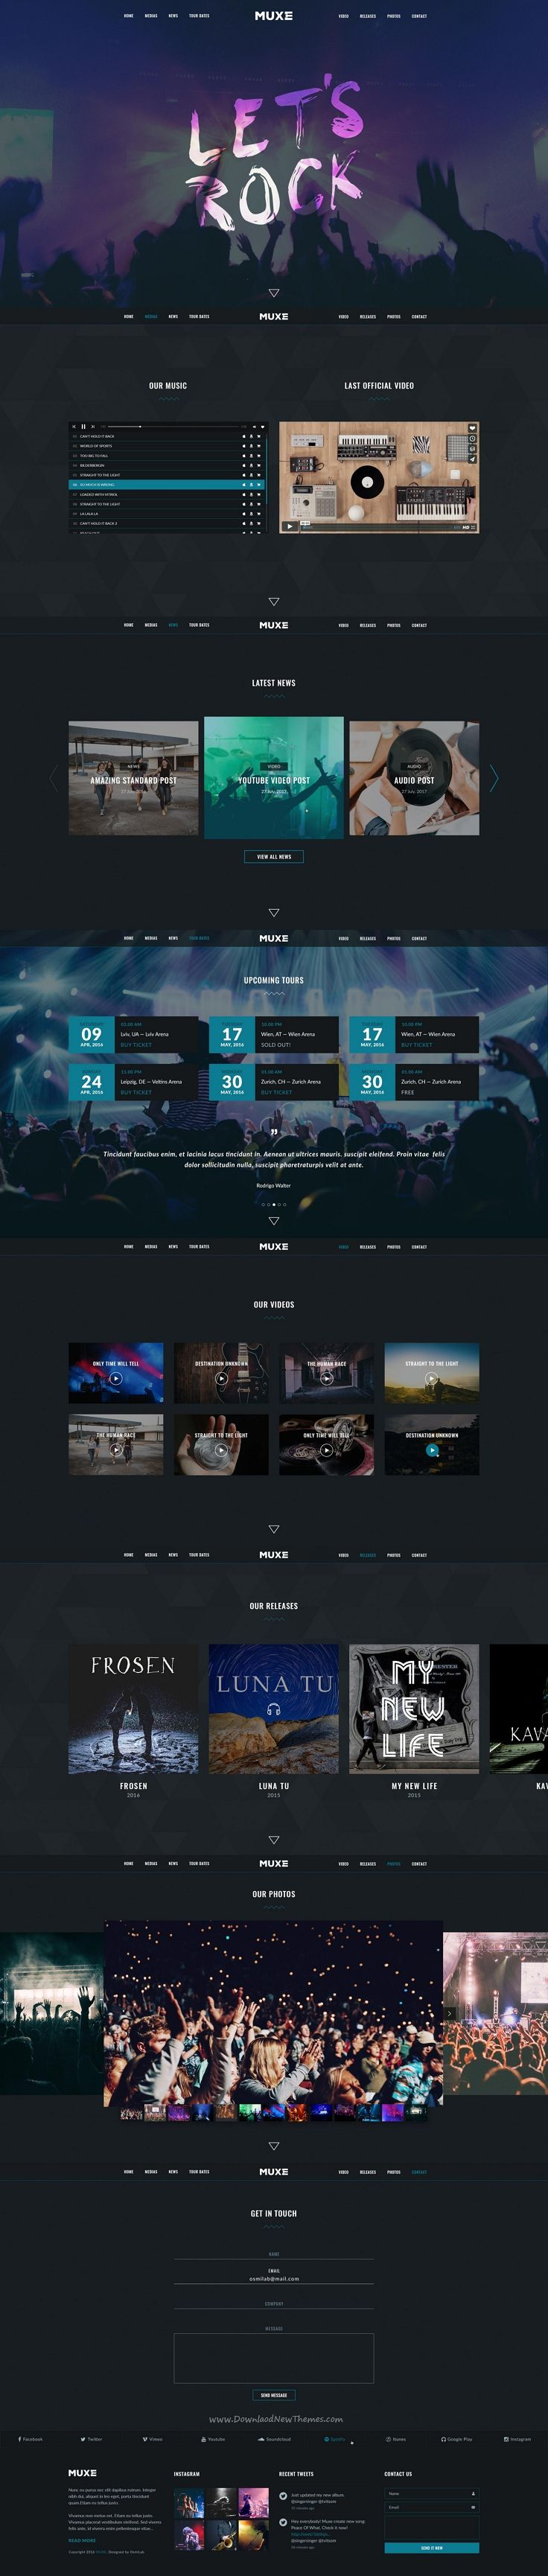 Muxe is a great design premium #PSD template for singers, bands or #musical #websites with 5 homepage and 56+ PSD pages download now➯ https://themeforest.net/item/muxe-media-oriented-musical-psd-template/16966056?ref=Datasata